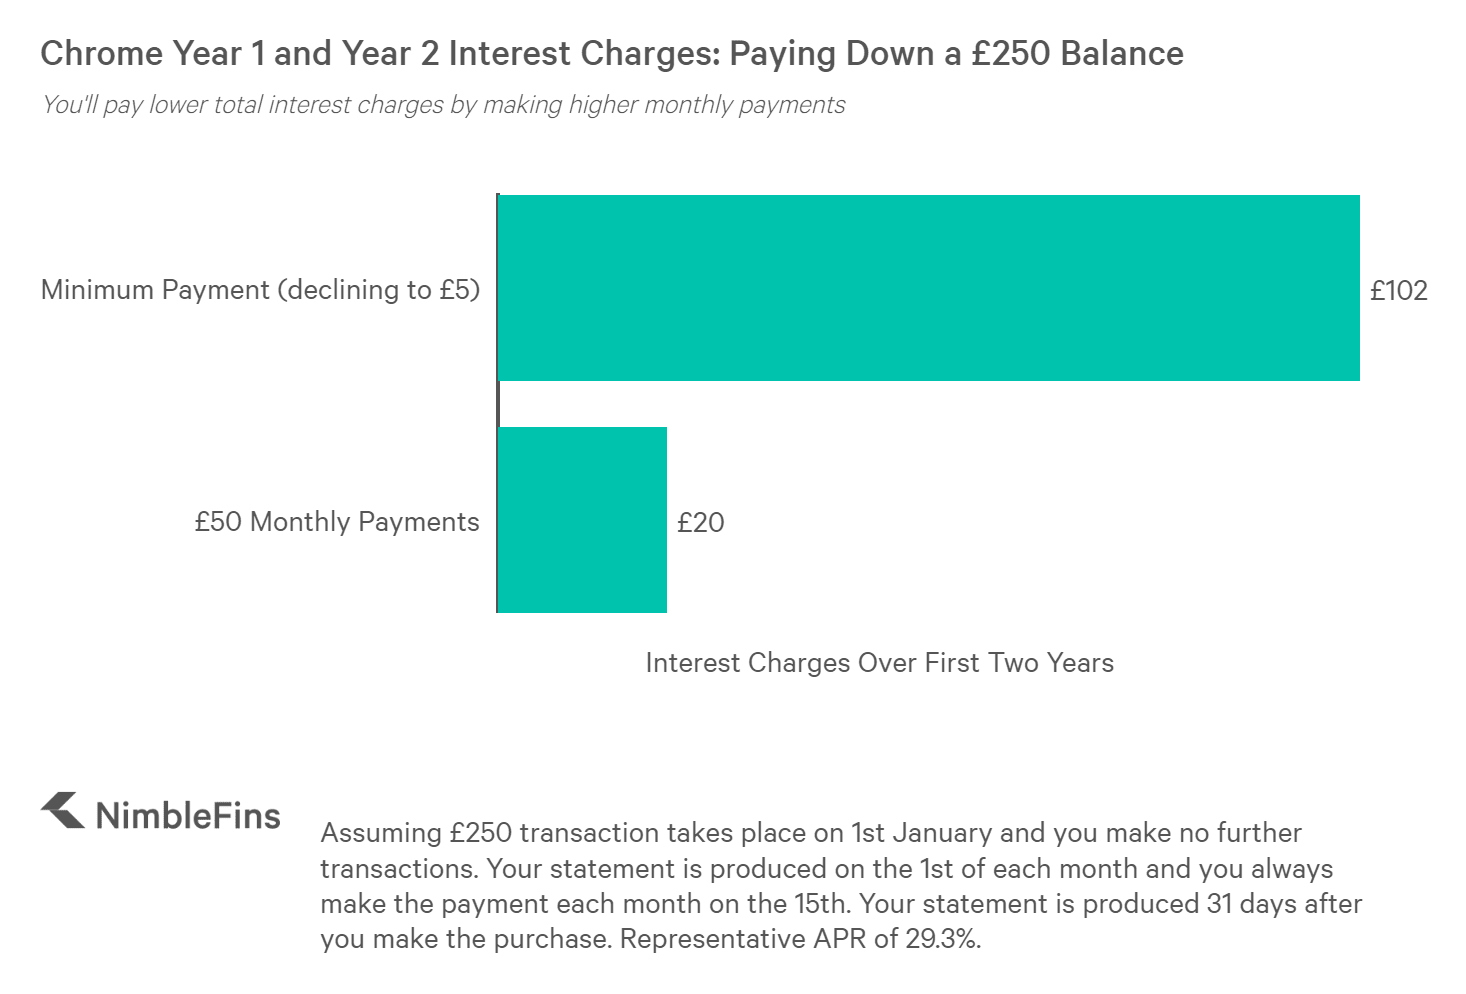 chart showing total interest charges paid while paying down a £250 credit card debt on the Chrome credit card with minimum monthly payments and higher monthly payments